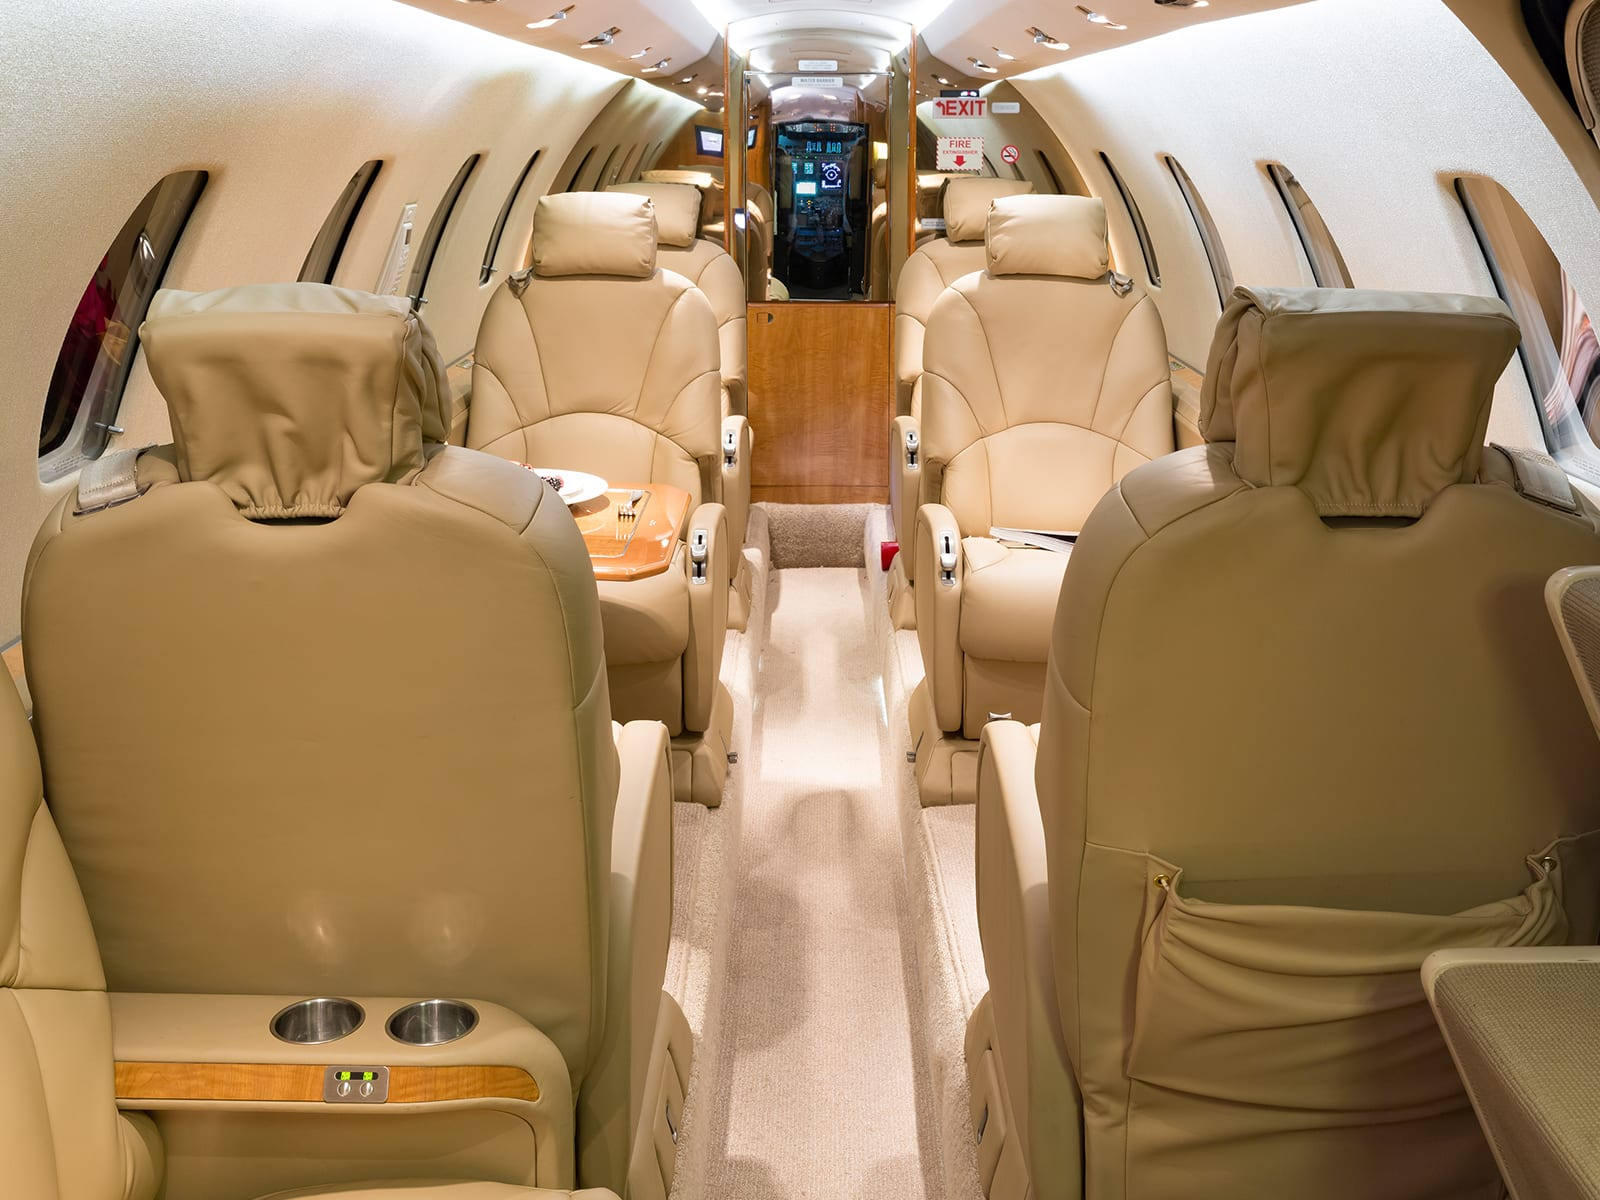 The inside of a Priority Jet airplane